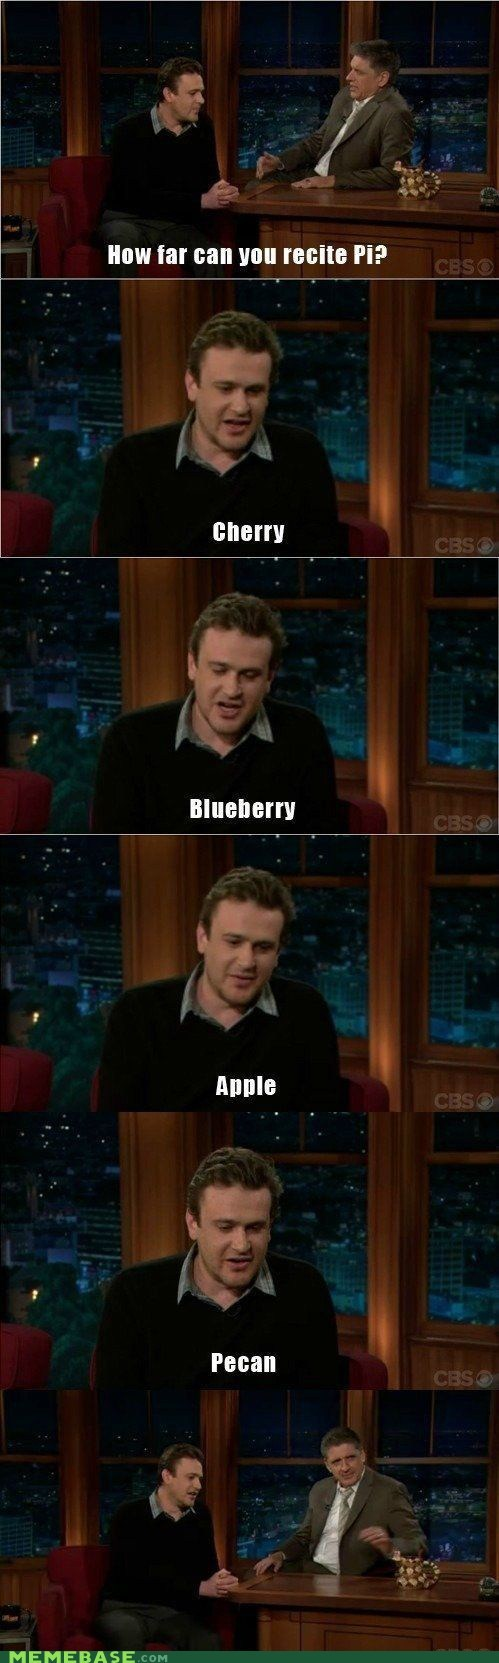 pi,pie,jason segel,interview,TV